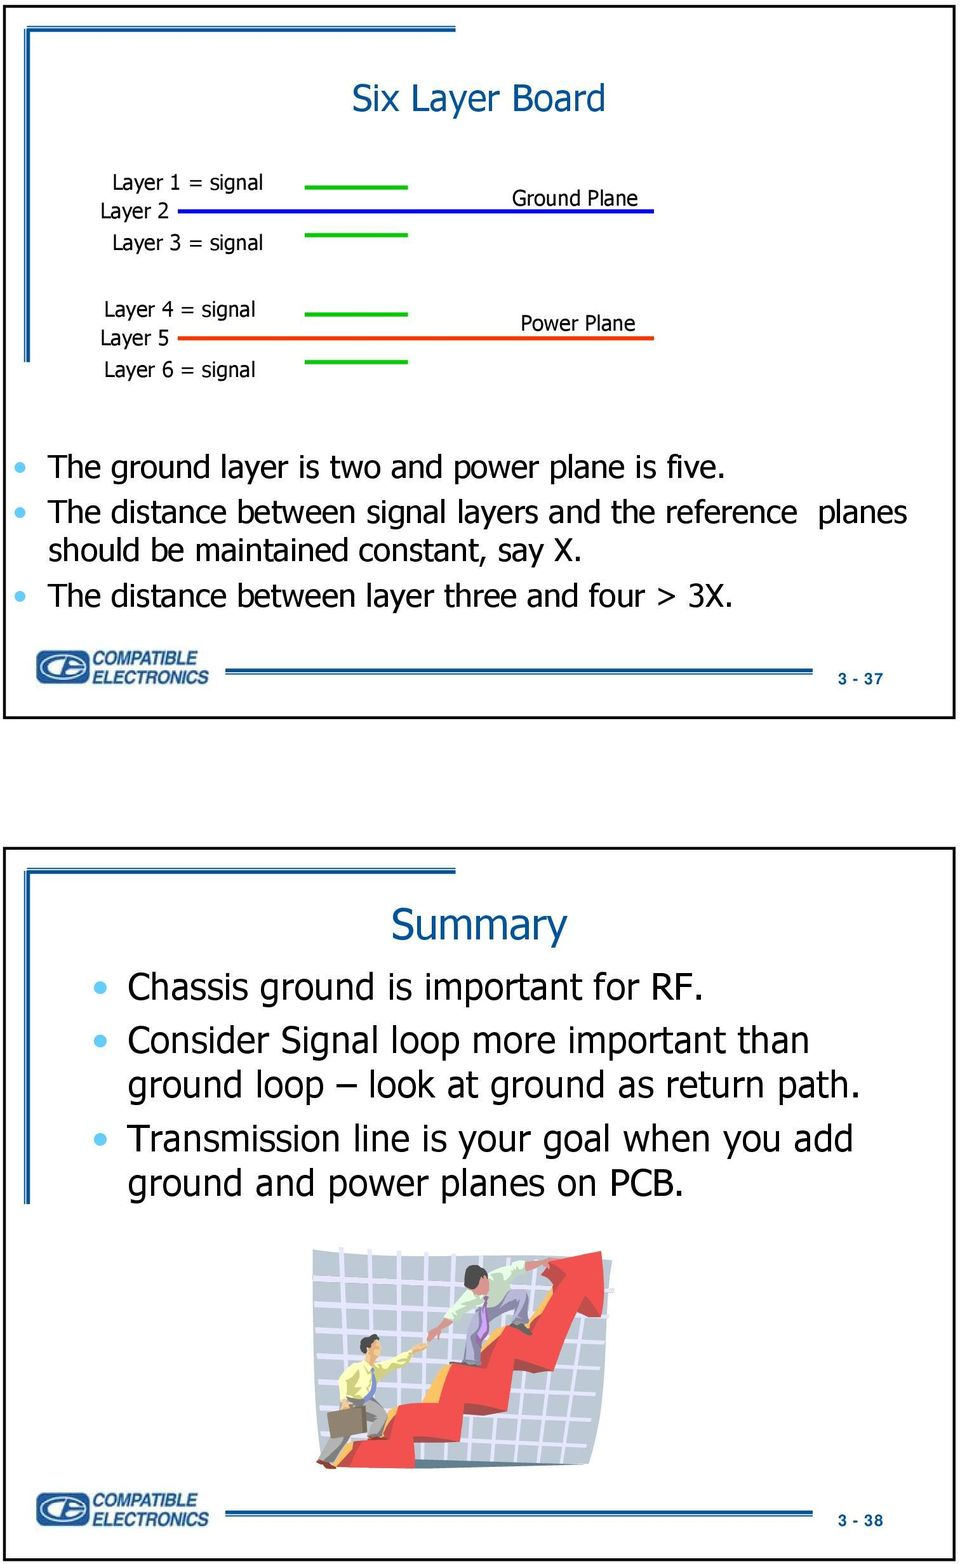 The distance between signal layers and the reference planes should be maintained constant, say X.